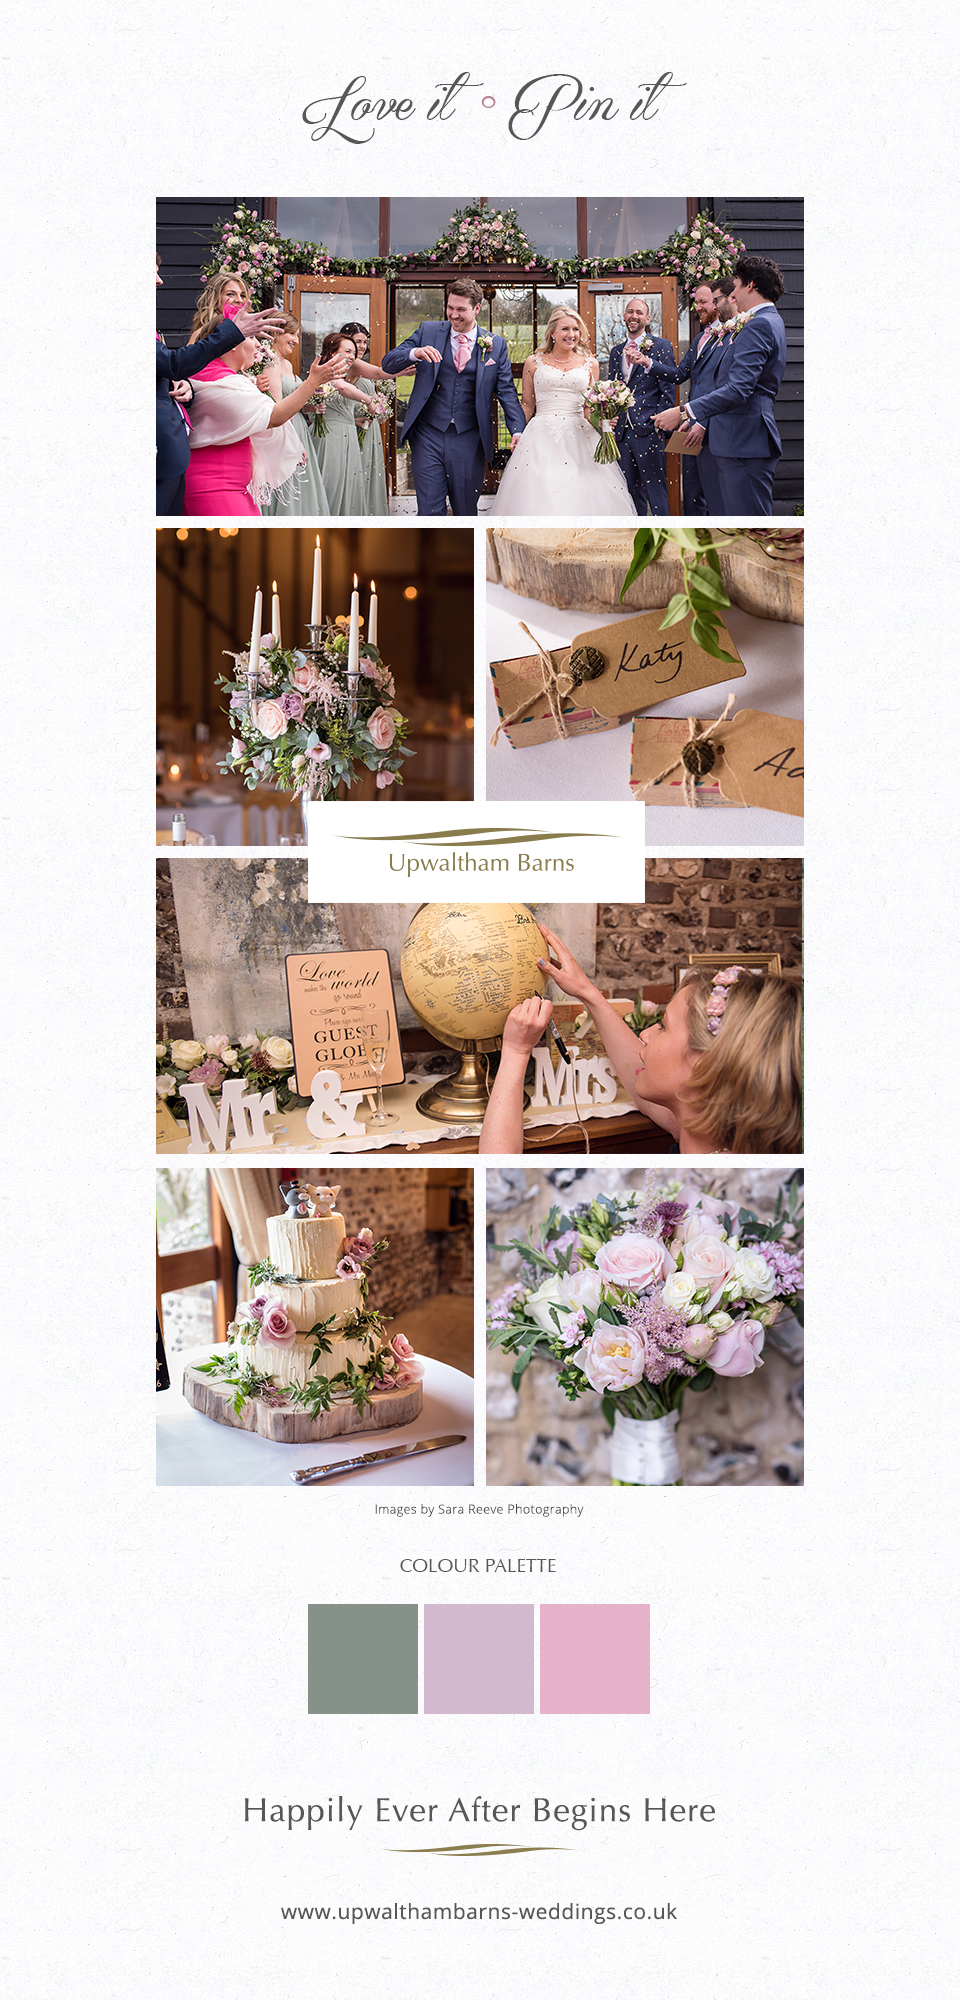 Katy and Adam romantic spring wedding ideas at the beautiful Upwaltham Barns in West Sussex